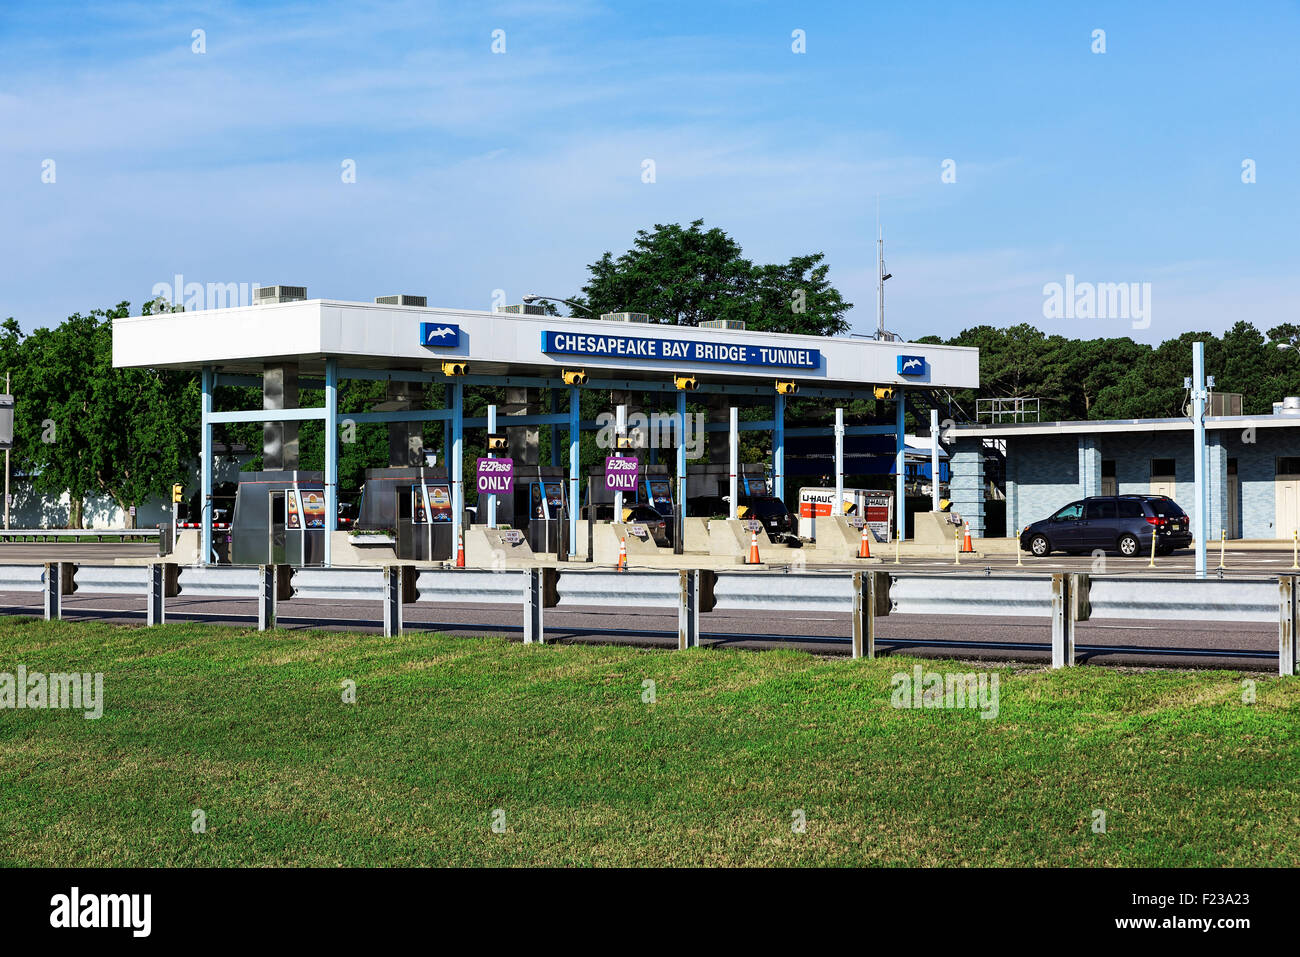 Chesapeake Bay Bridge Tunnel toll booth, Cape Charles, Virginia, USA - Stock Image